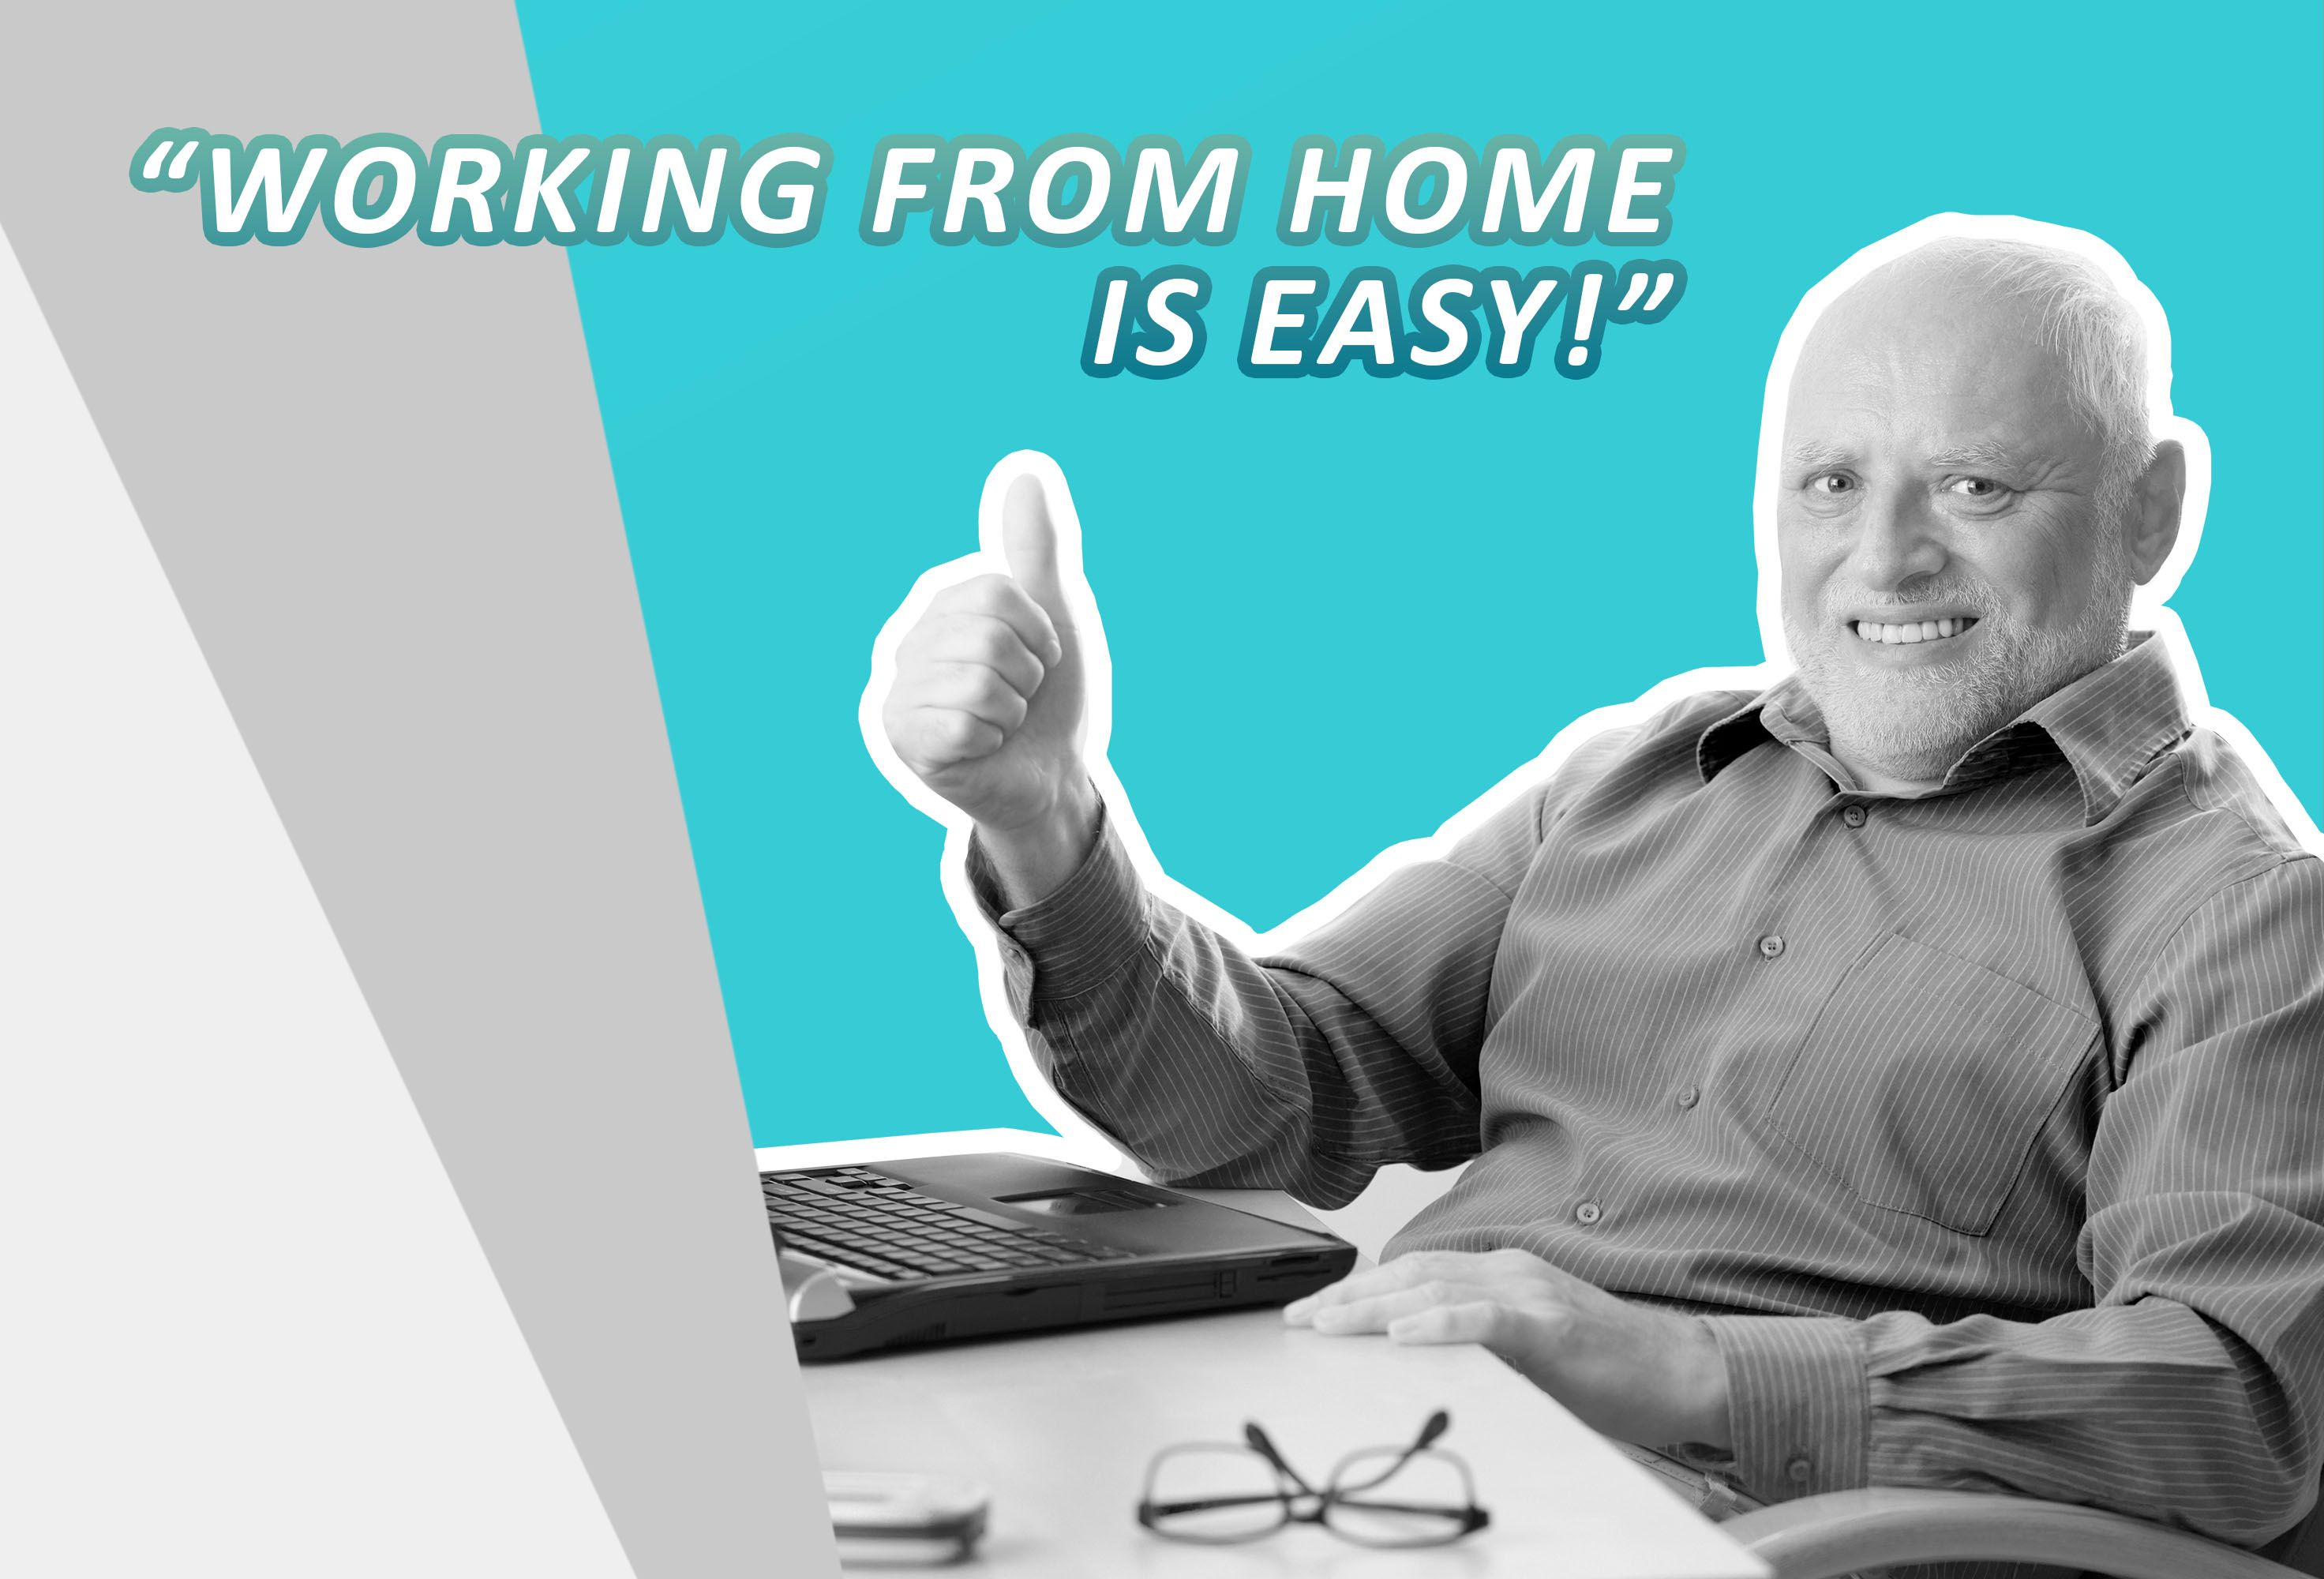 Working from home: 9 real tips from an entrepreneur and dad who works remotely